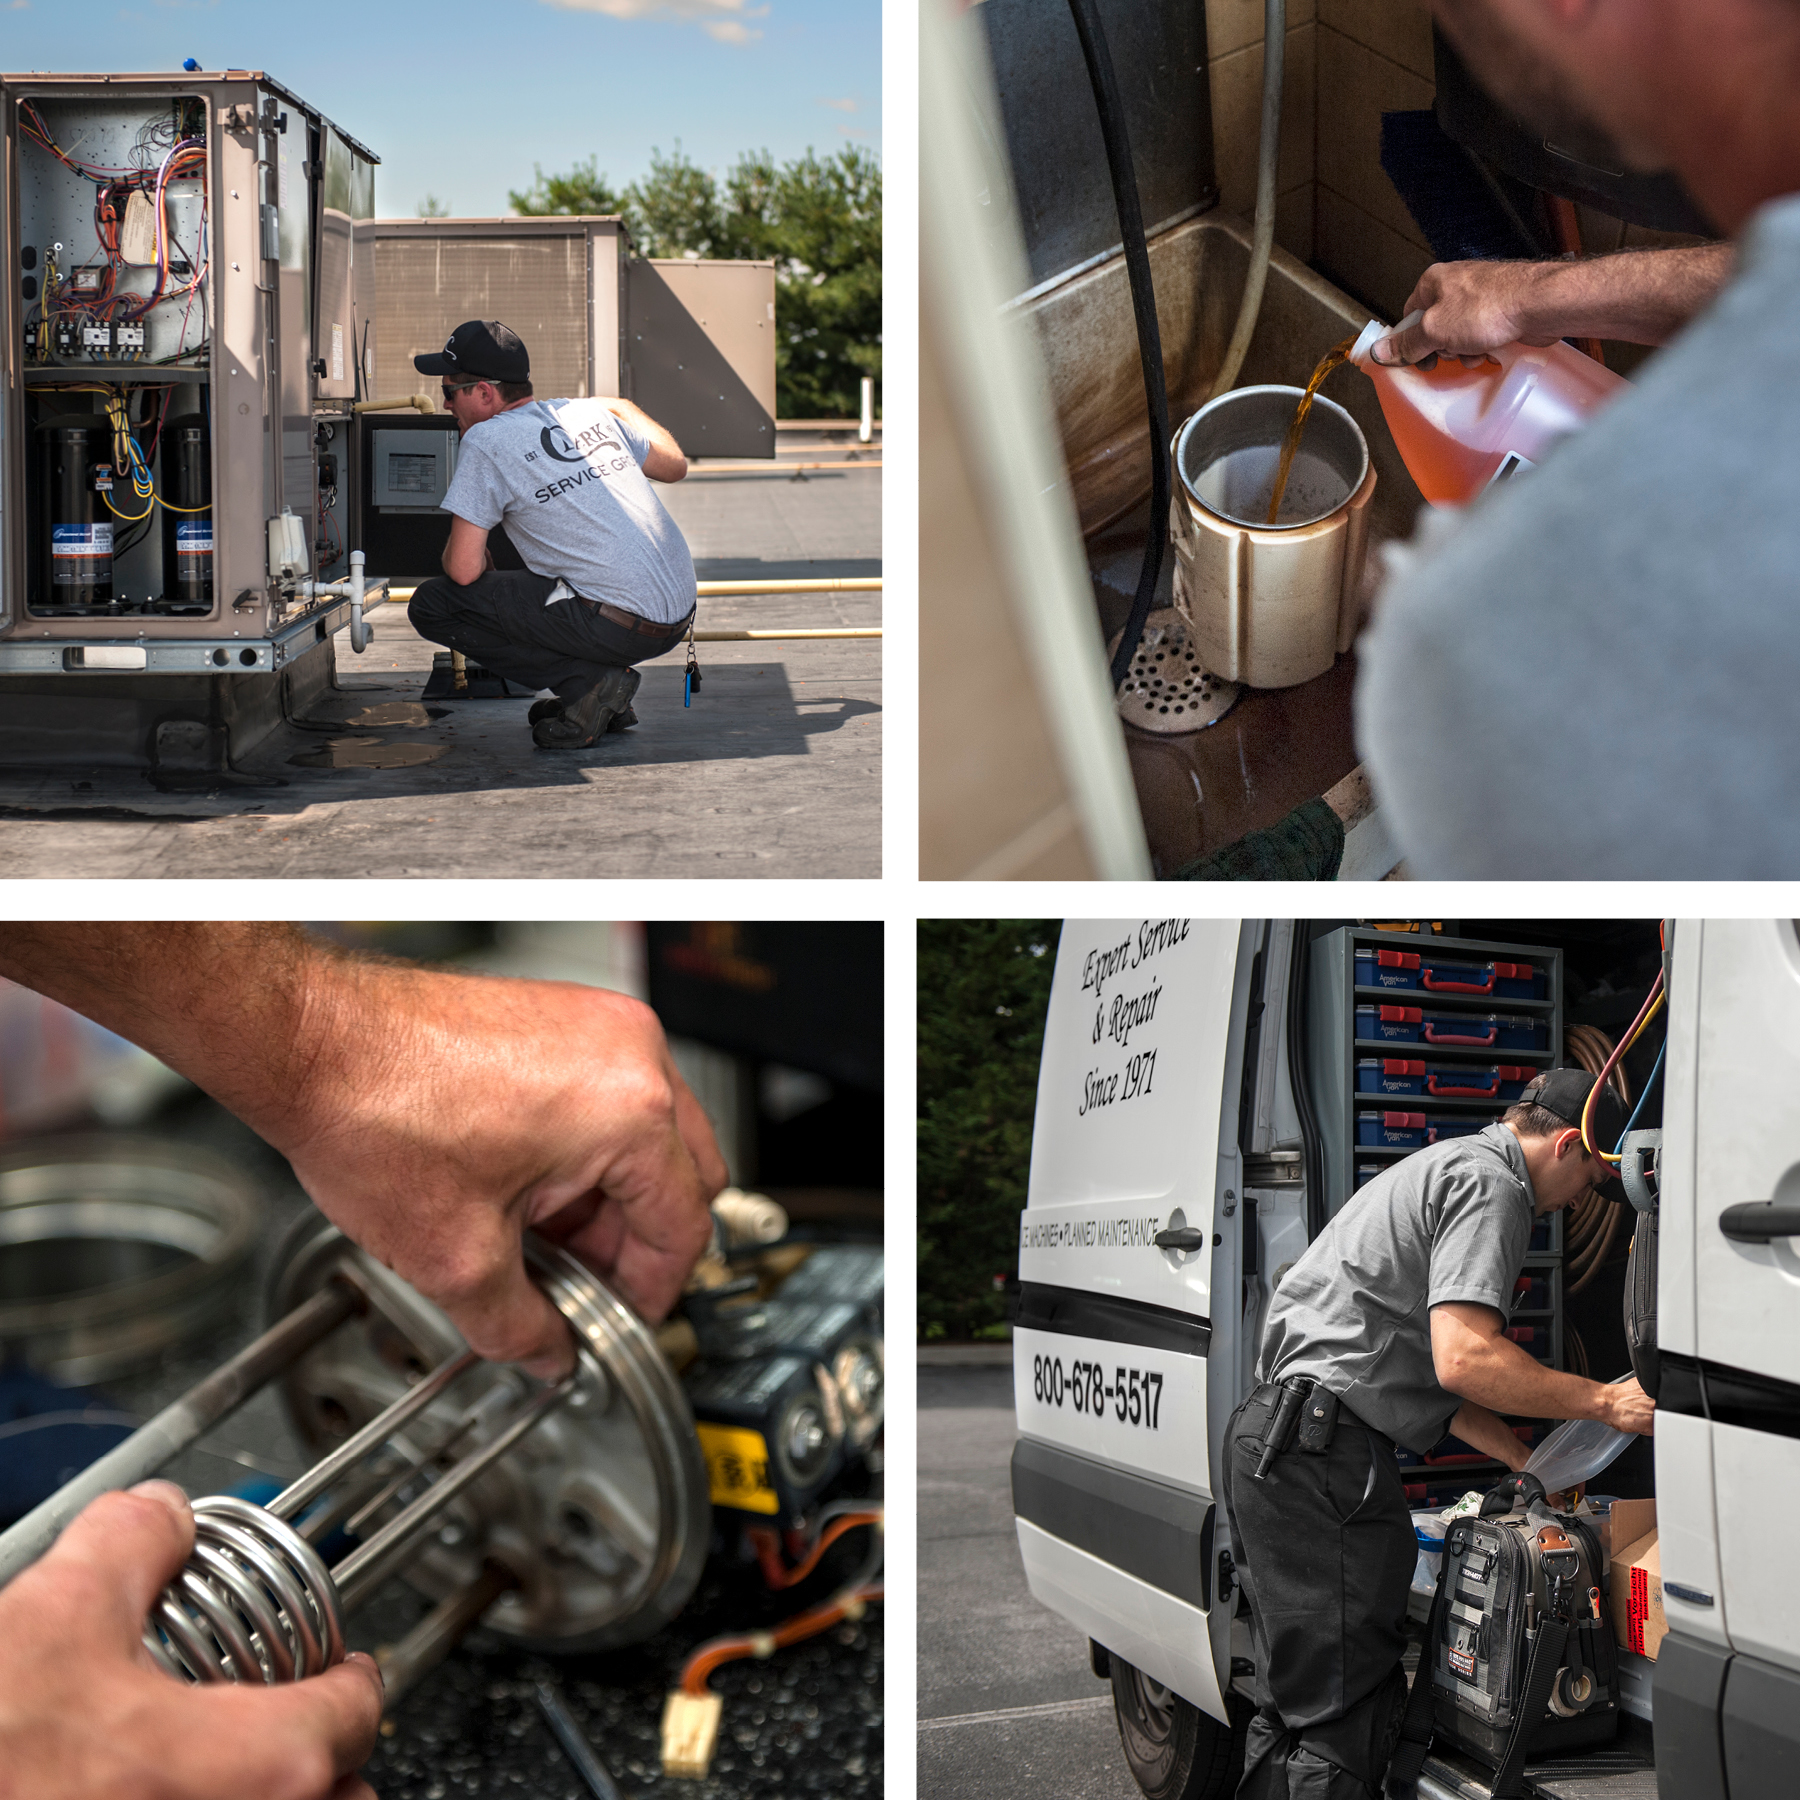 Proactive Maintenance Technicians cleaning and maintaining various commercial kitchen equipment and HVAC units.